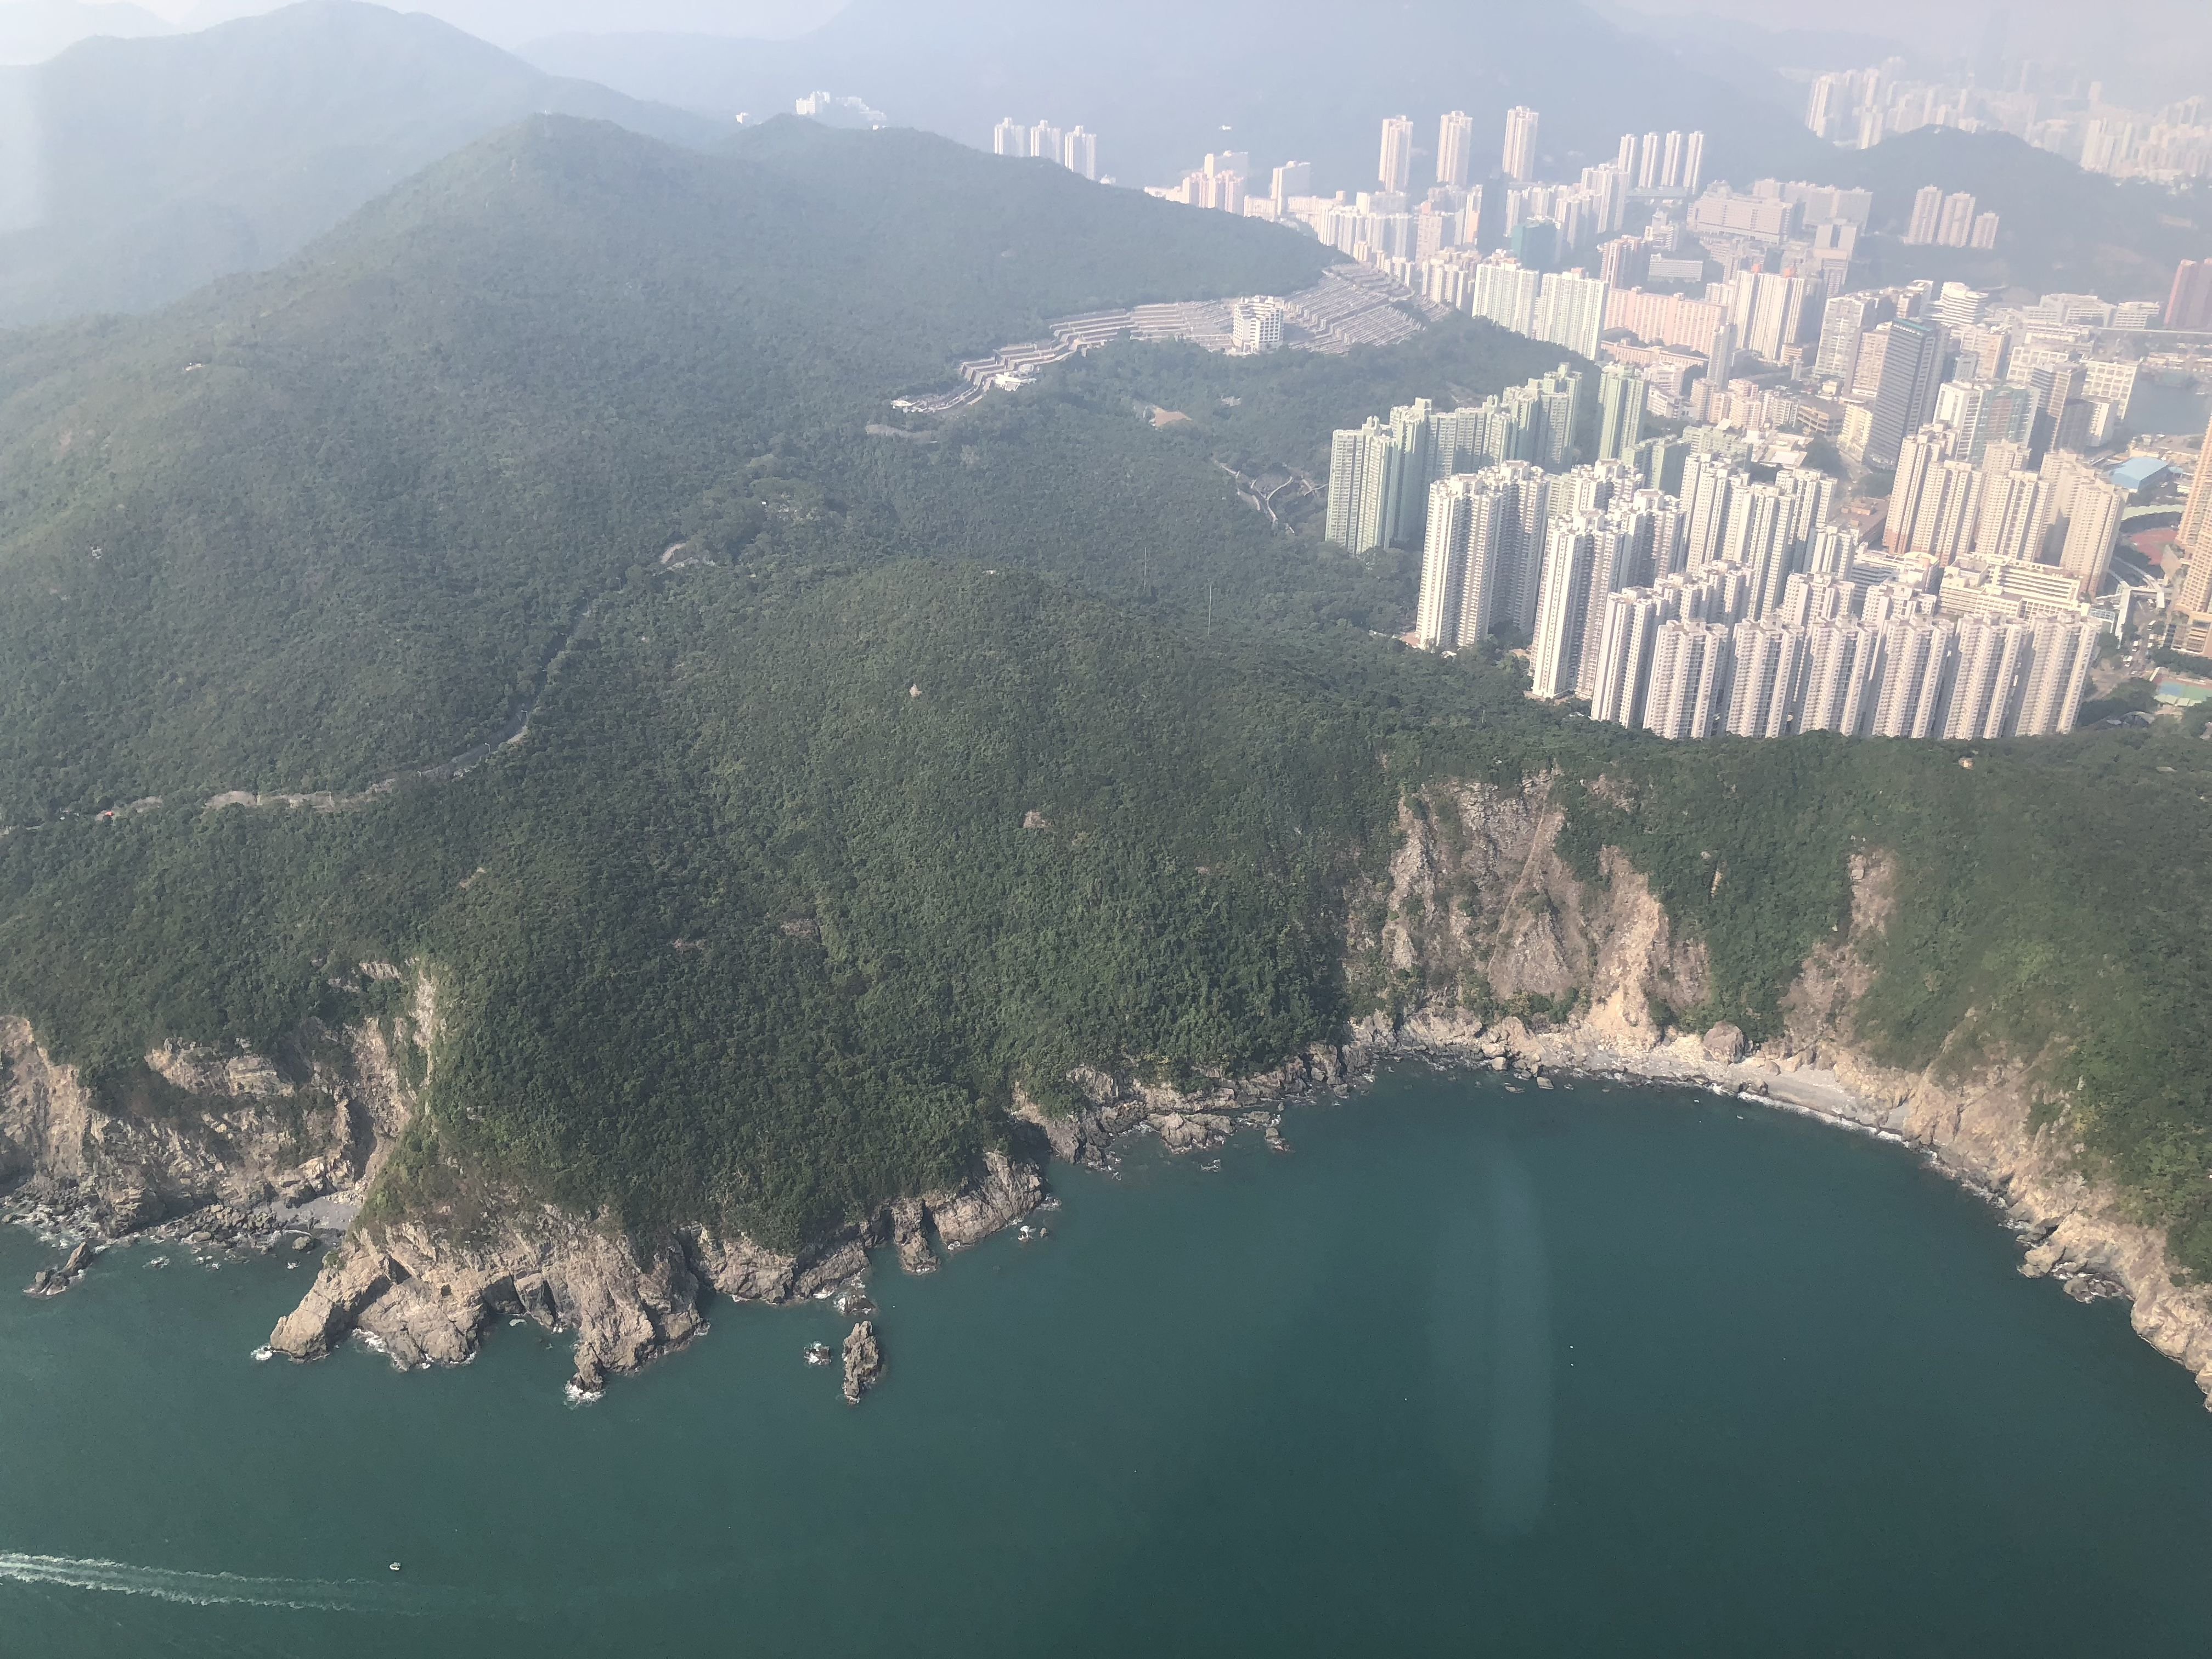 Helicopter Ride Places in hong kong, Helicopter ride